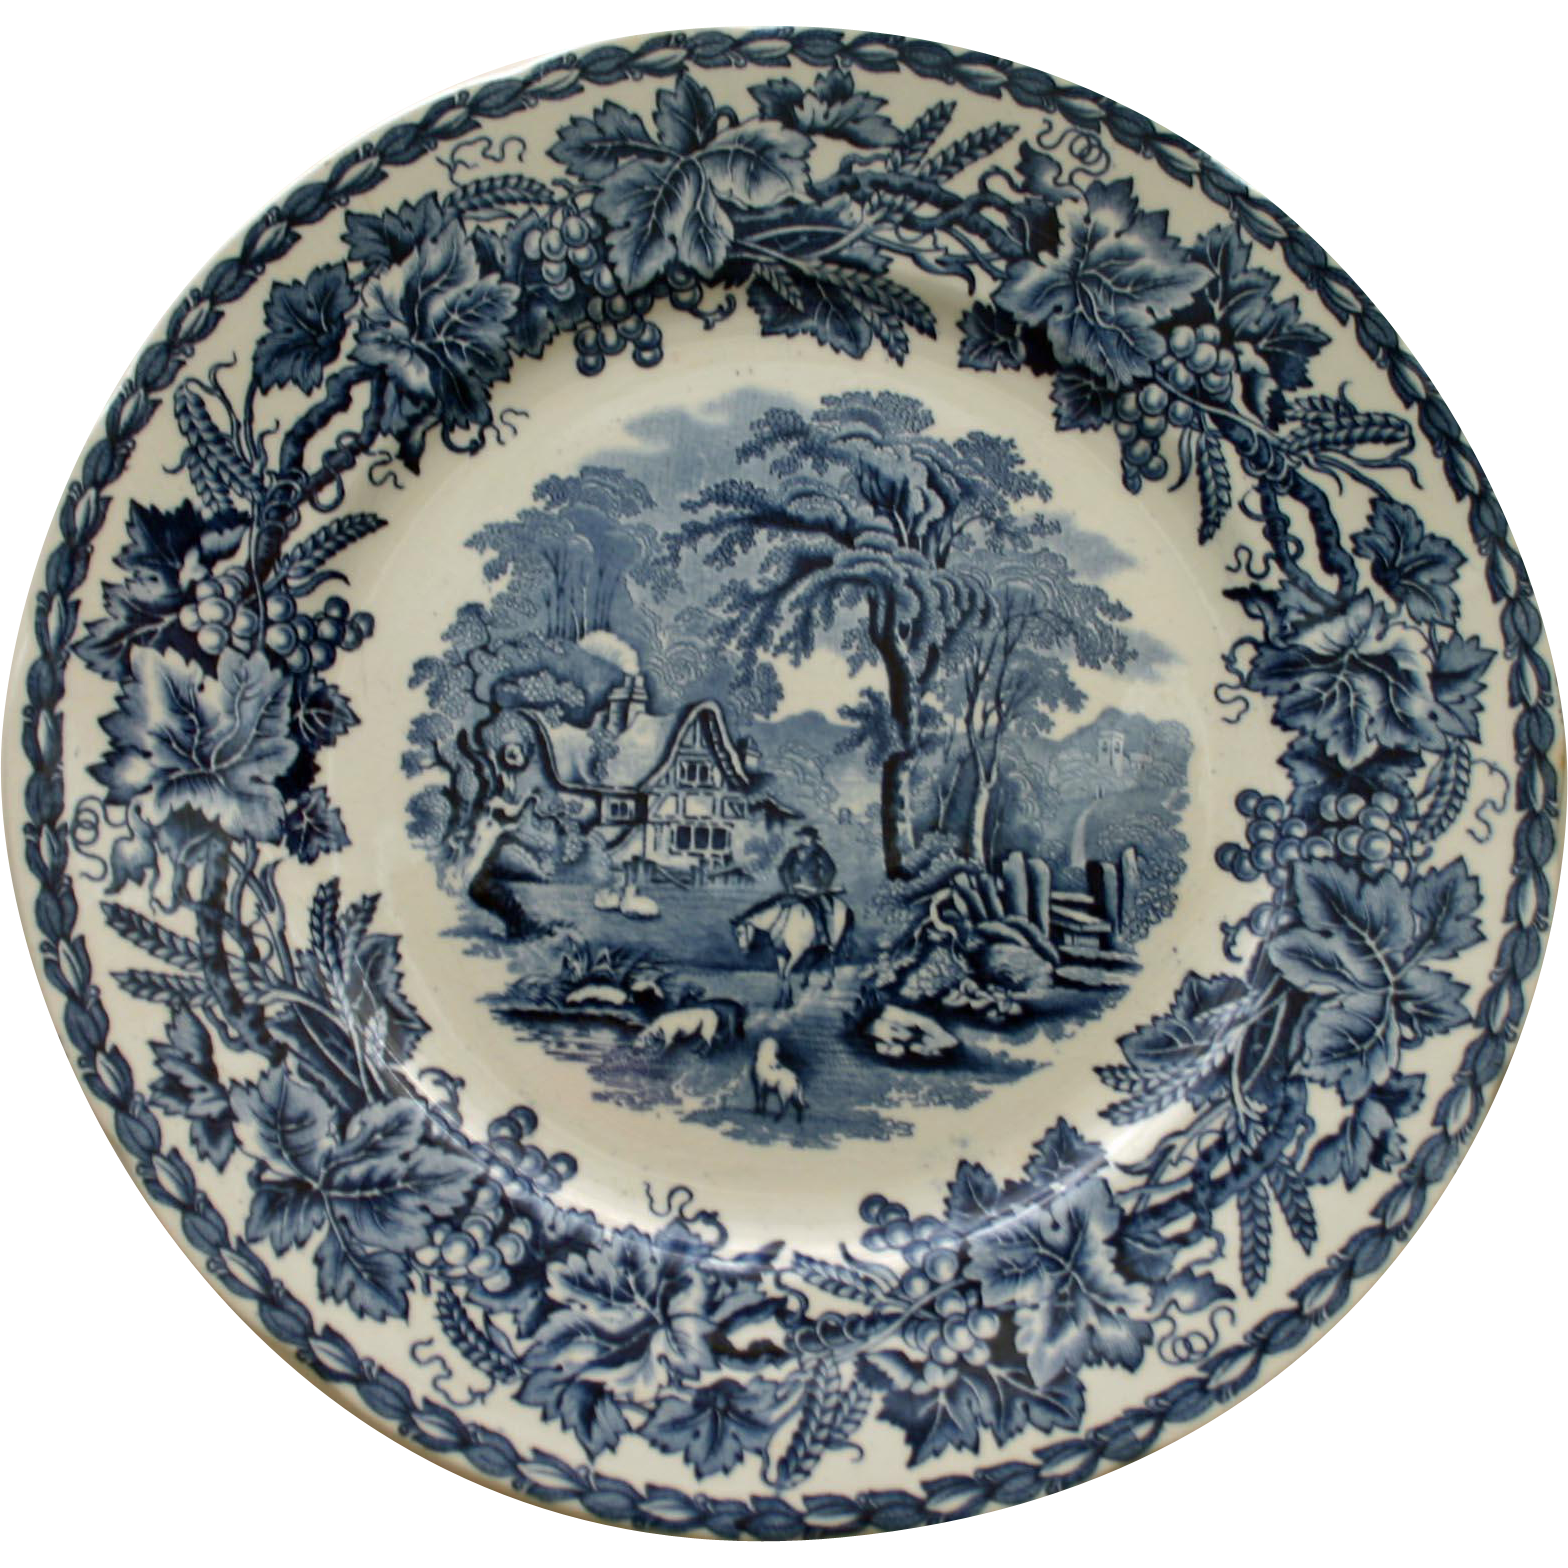 Vintage Blue and White Transferware Plate - British Scenery by Booth